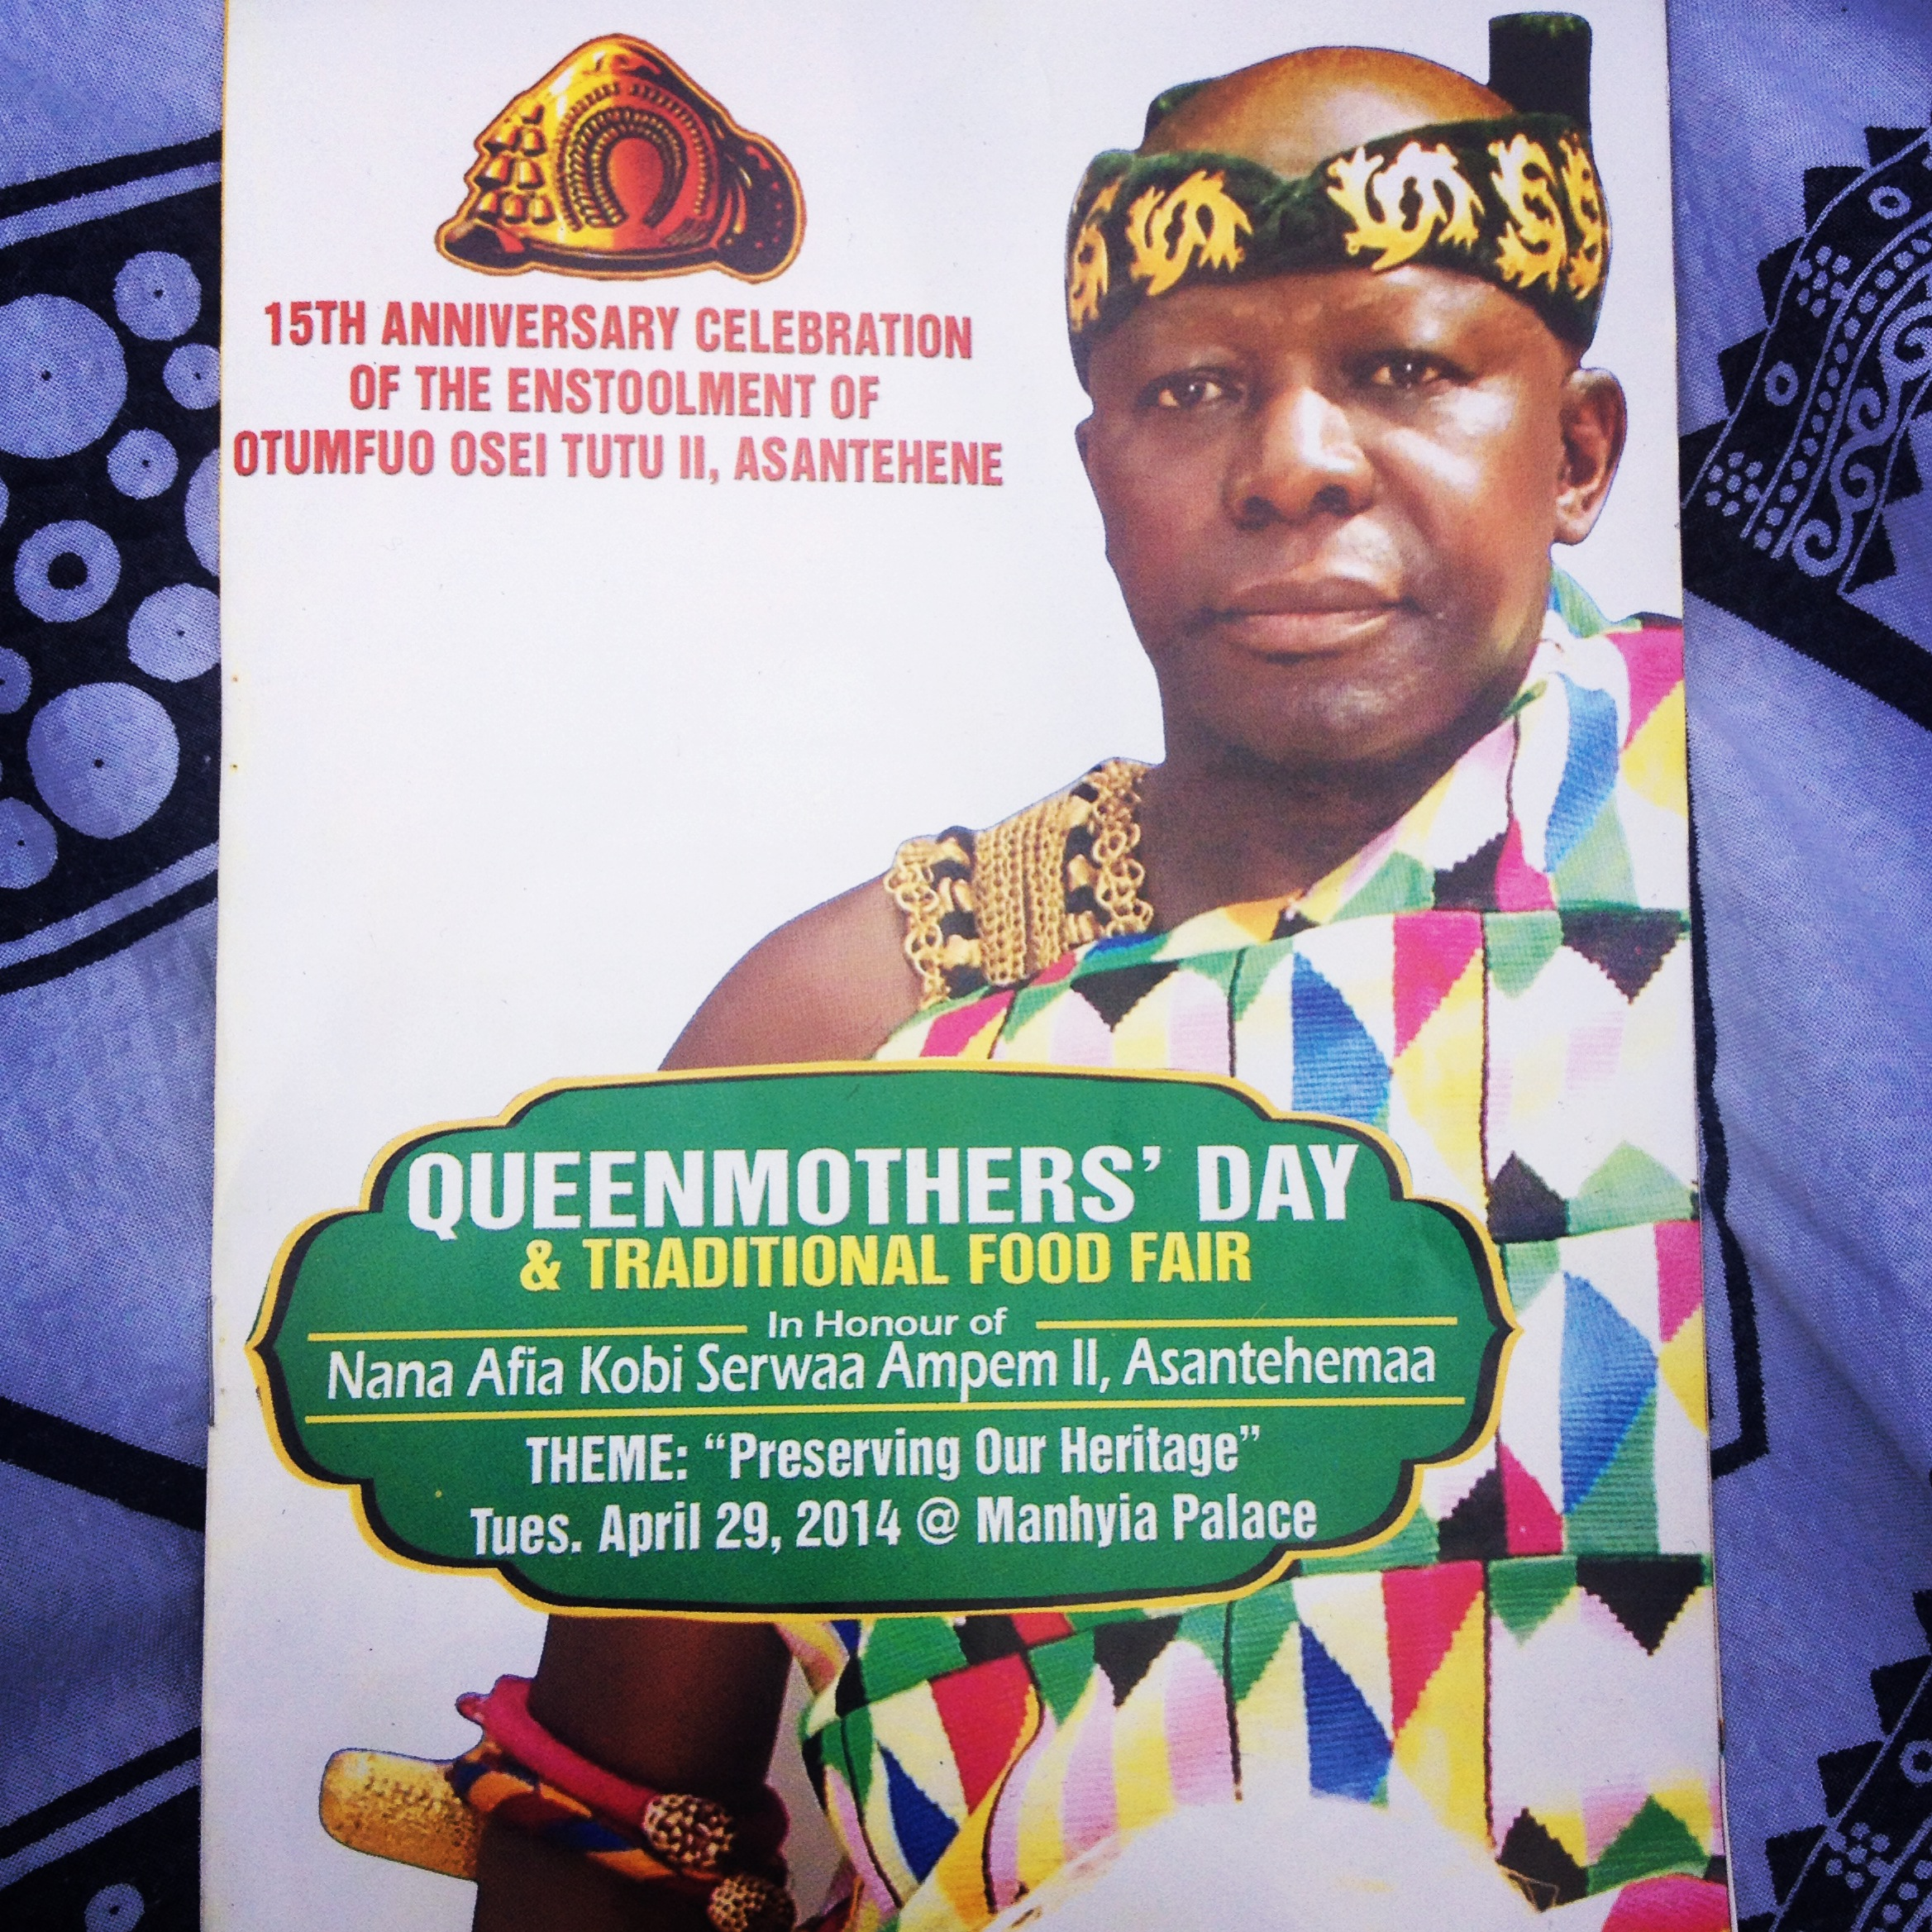 Program for Queen Mother's Day, hosted by Otumfuo, in honor of the Asante Queen Mother, Nana Afia Kobi Serwaa Ampem II.